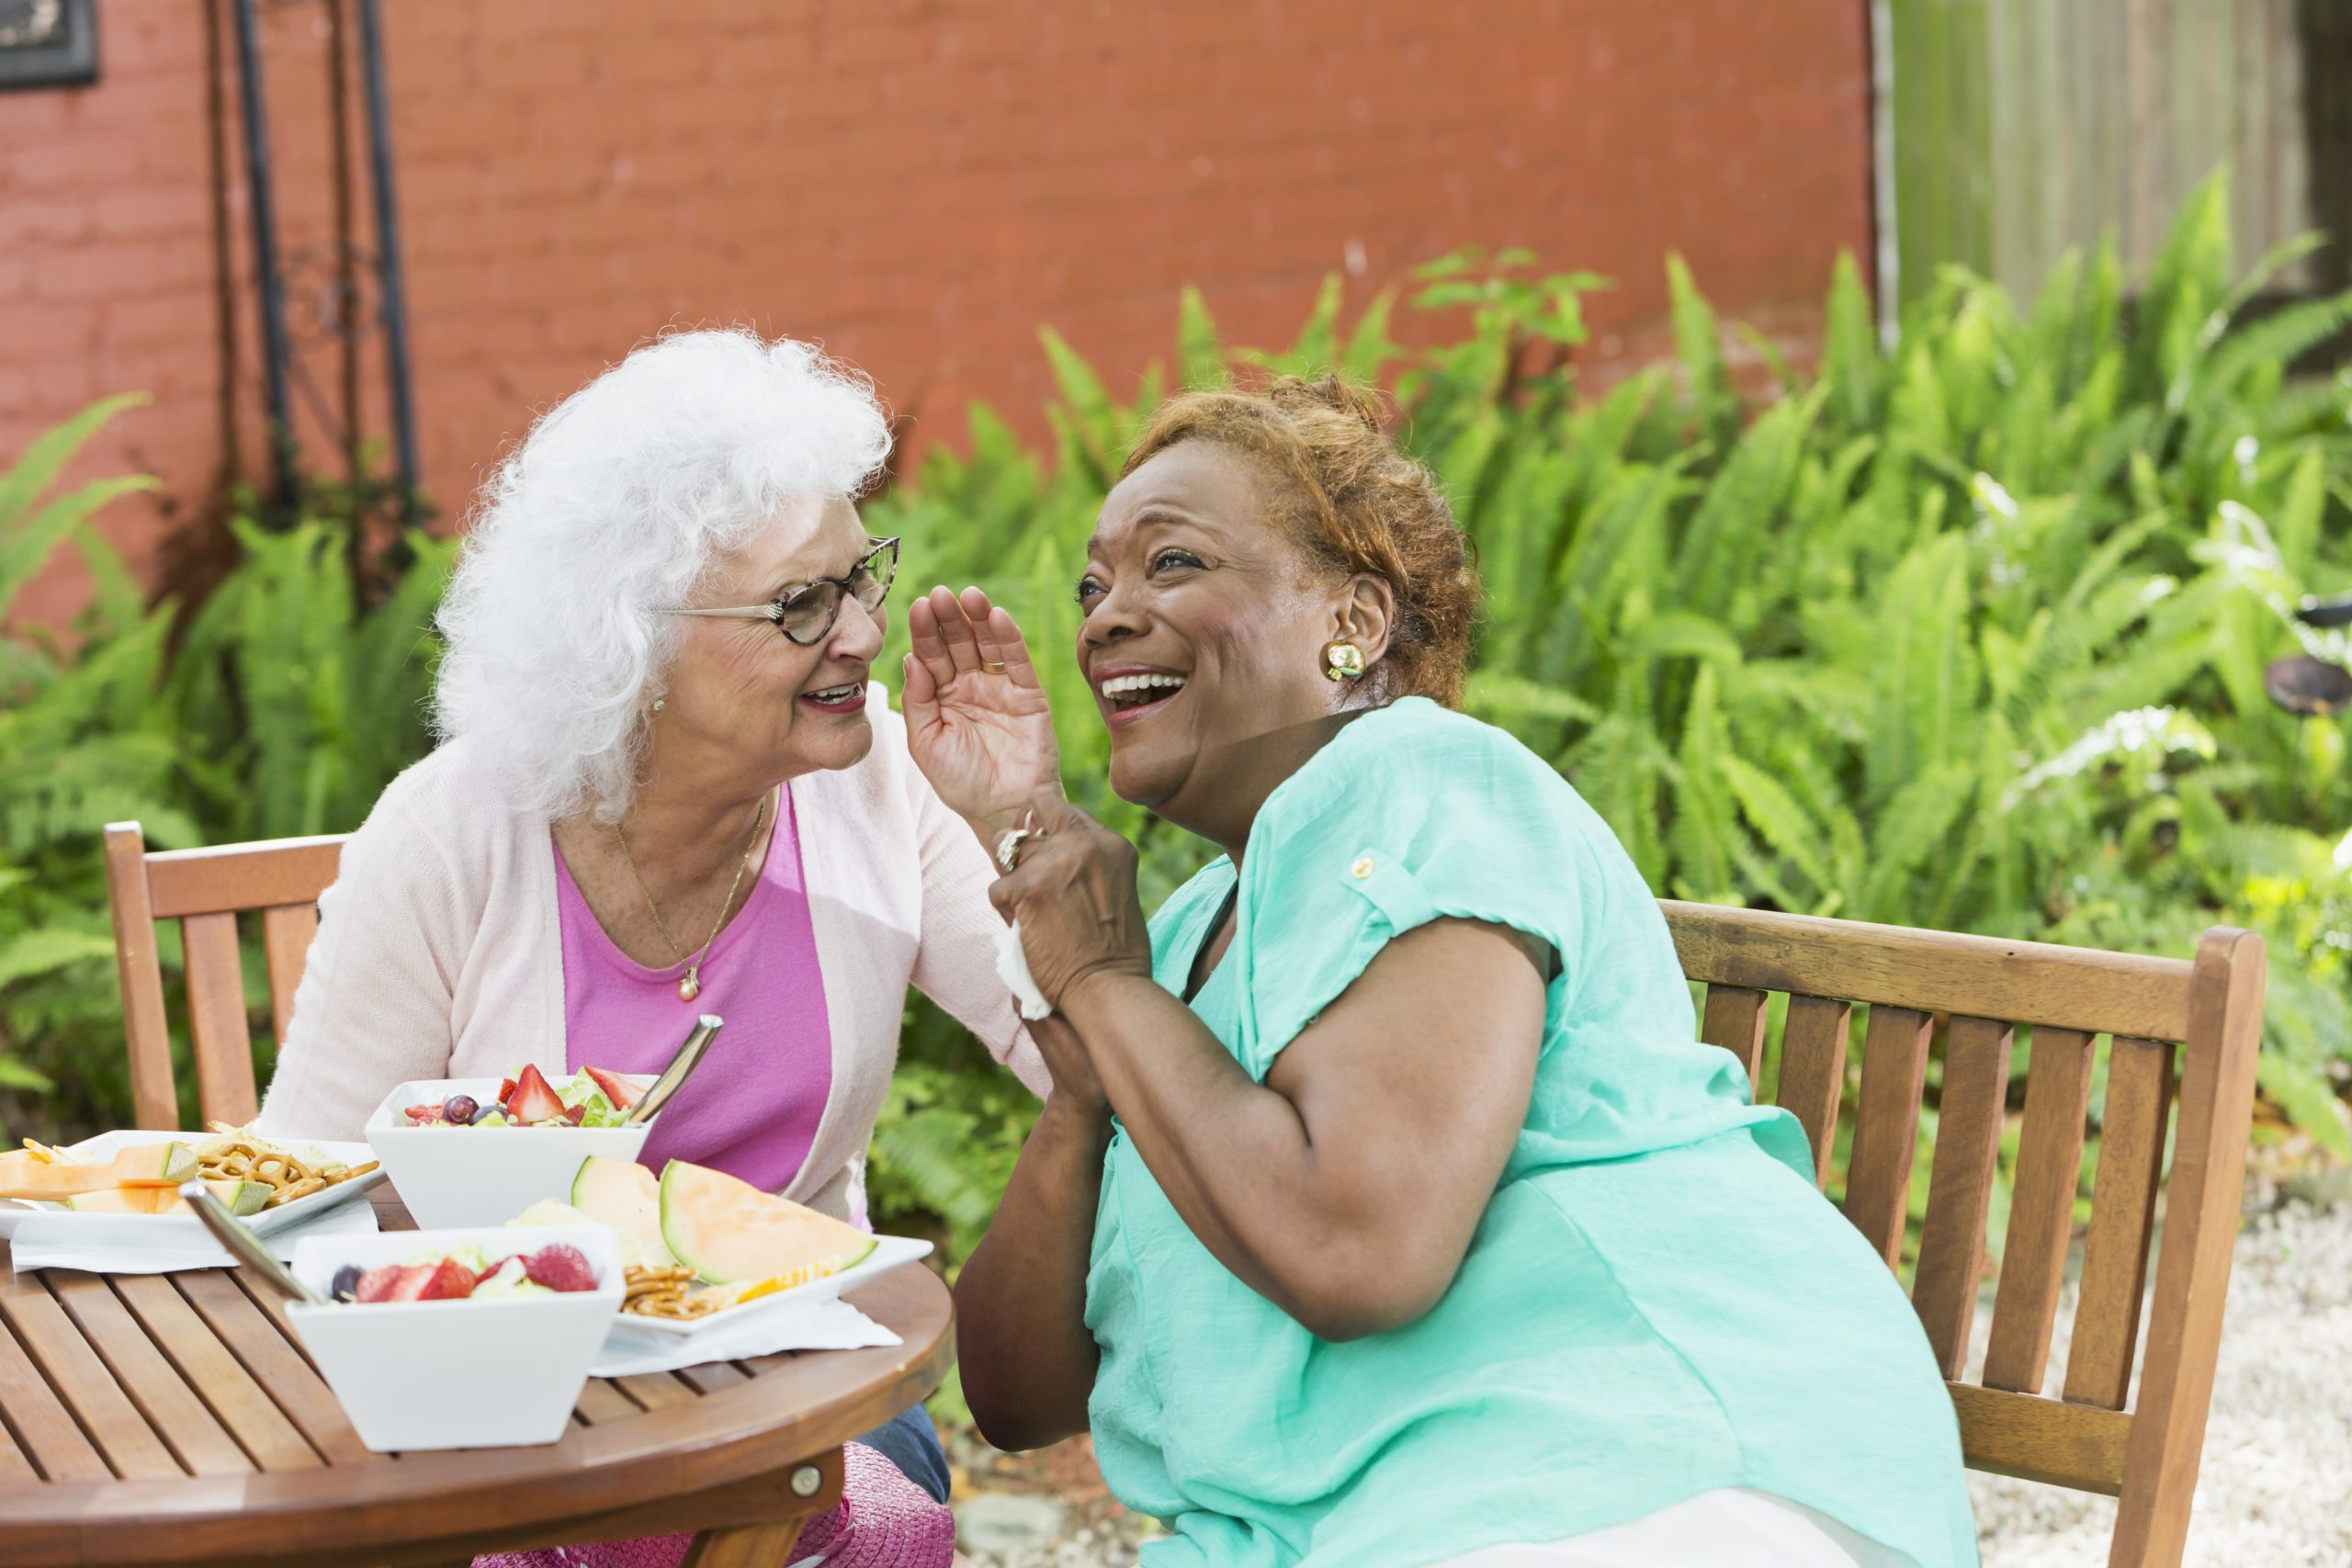 two older adults eating lunch and laughing